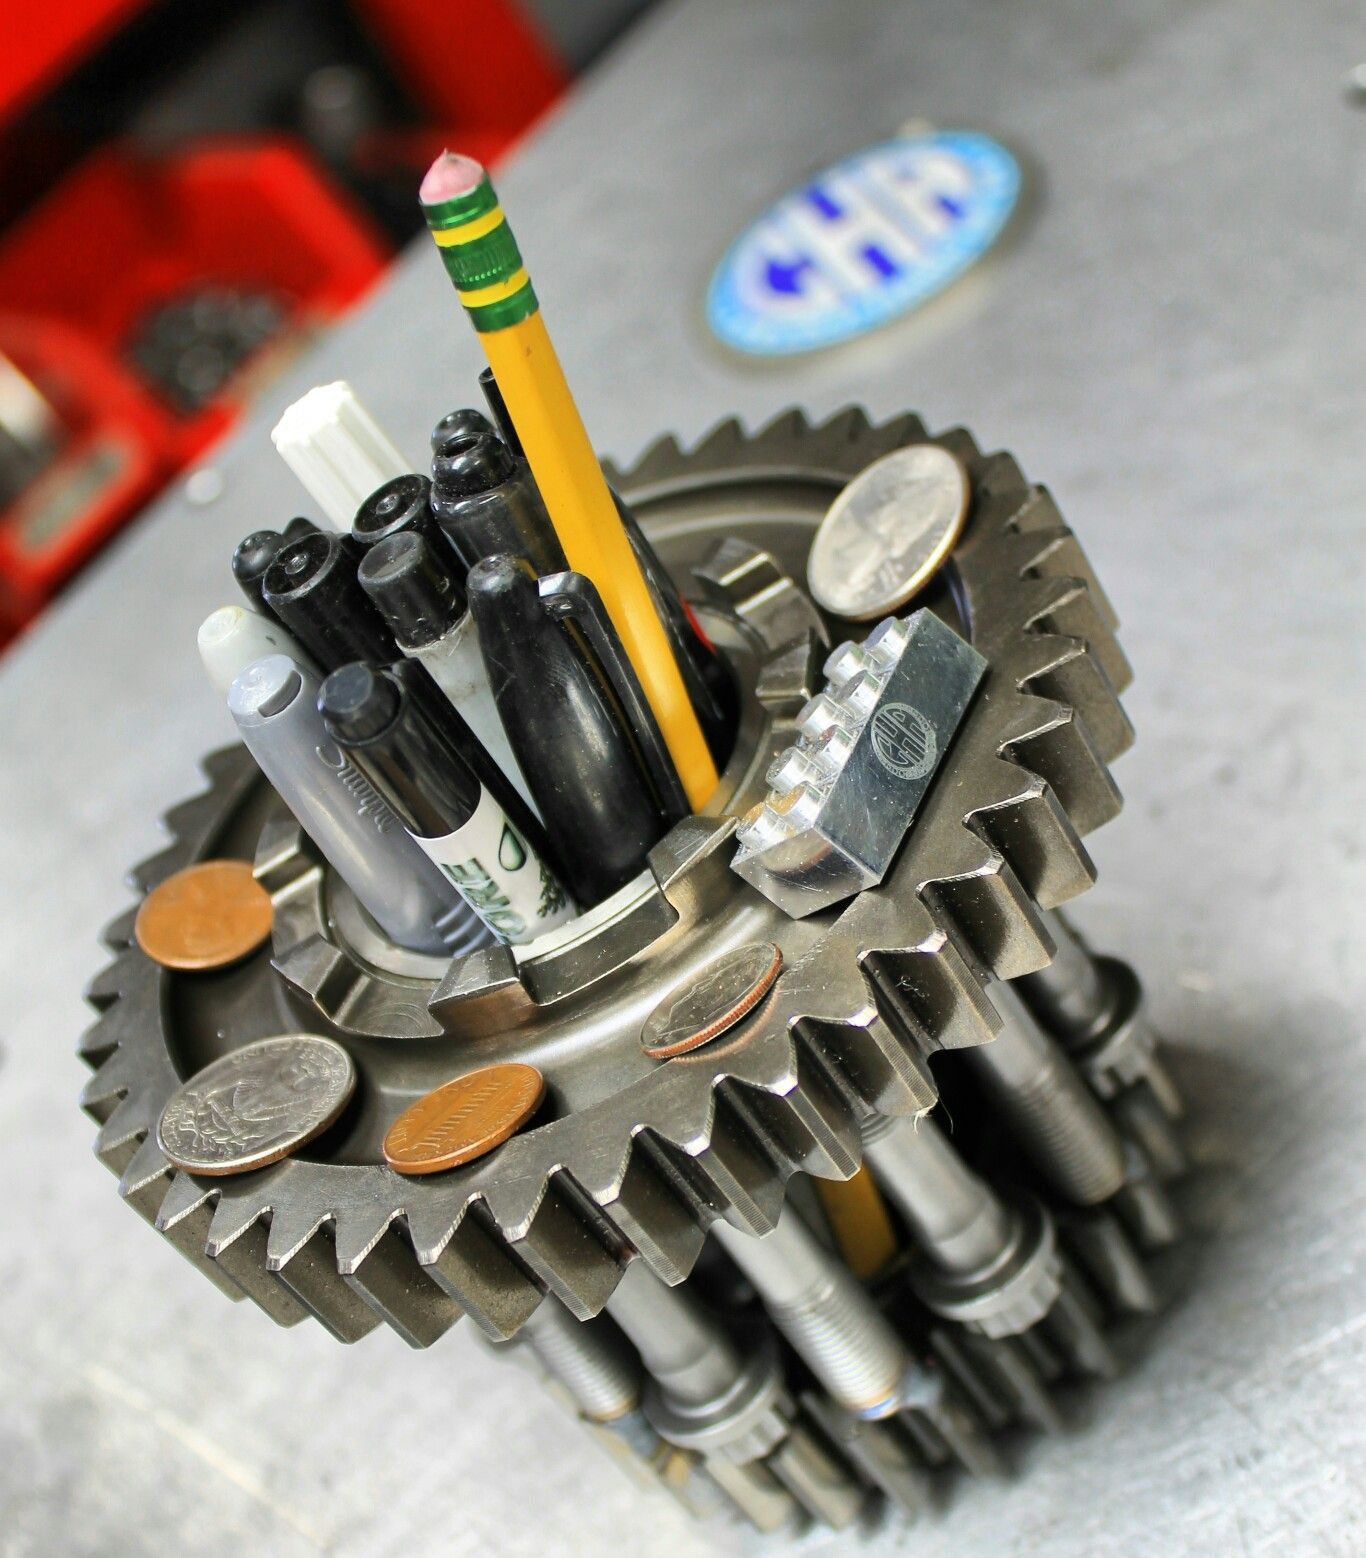 Indycar Transmission Gears With Top Fuel Connecting Rod Bolts Pencil